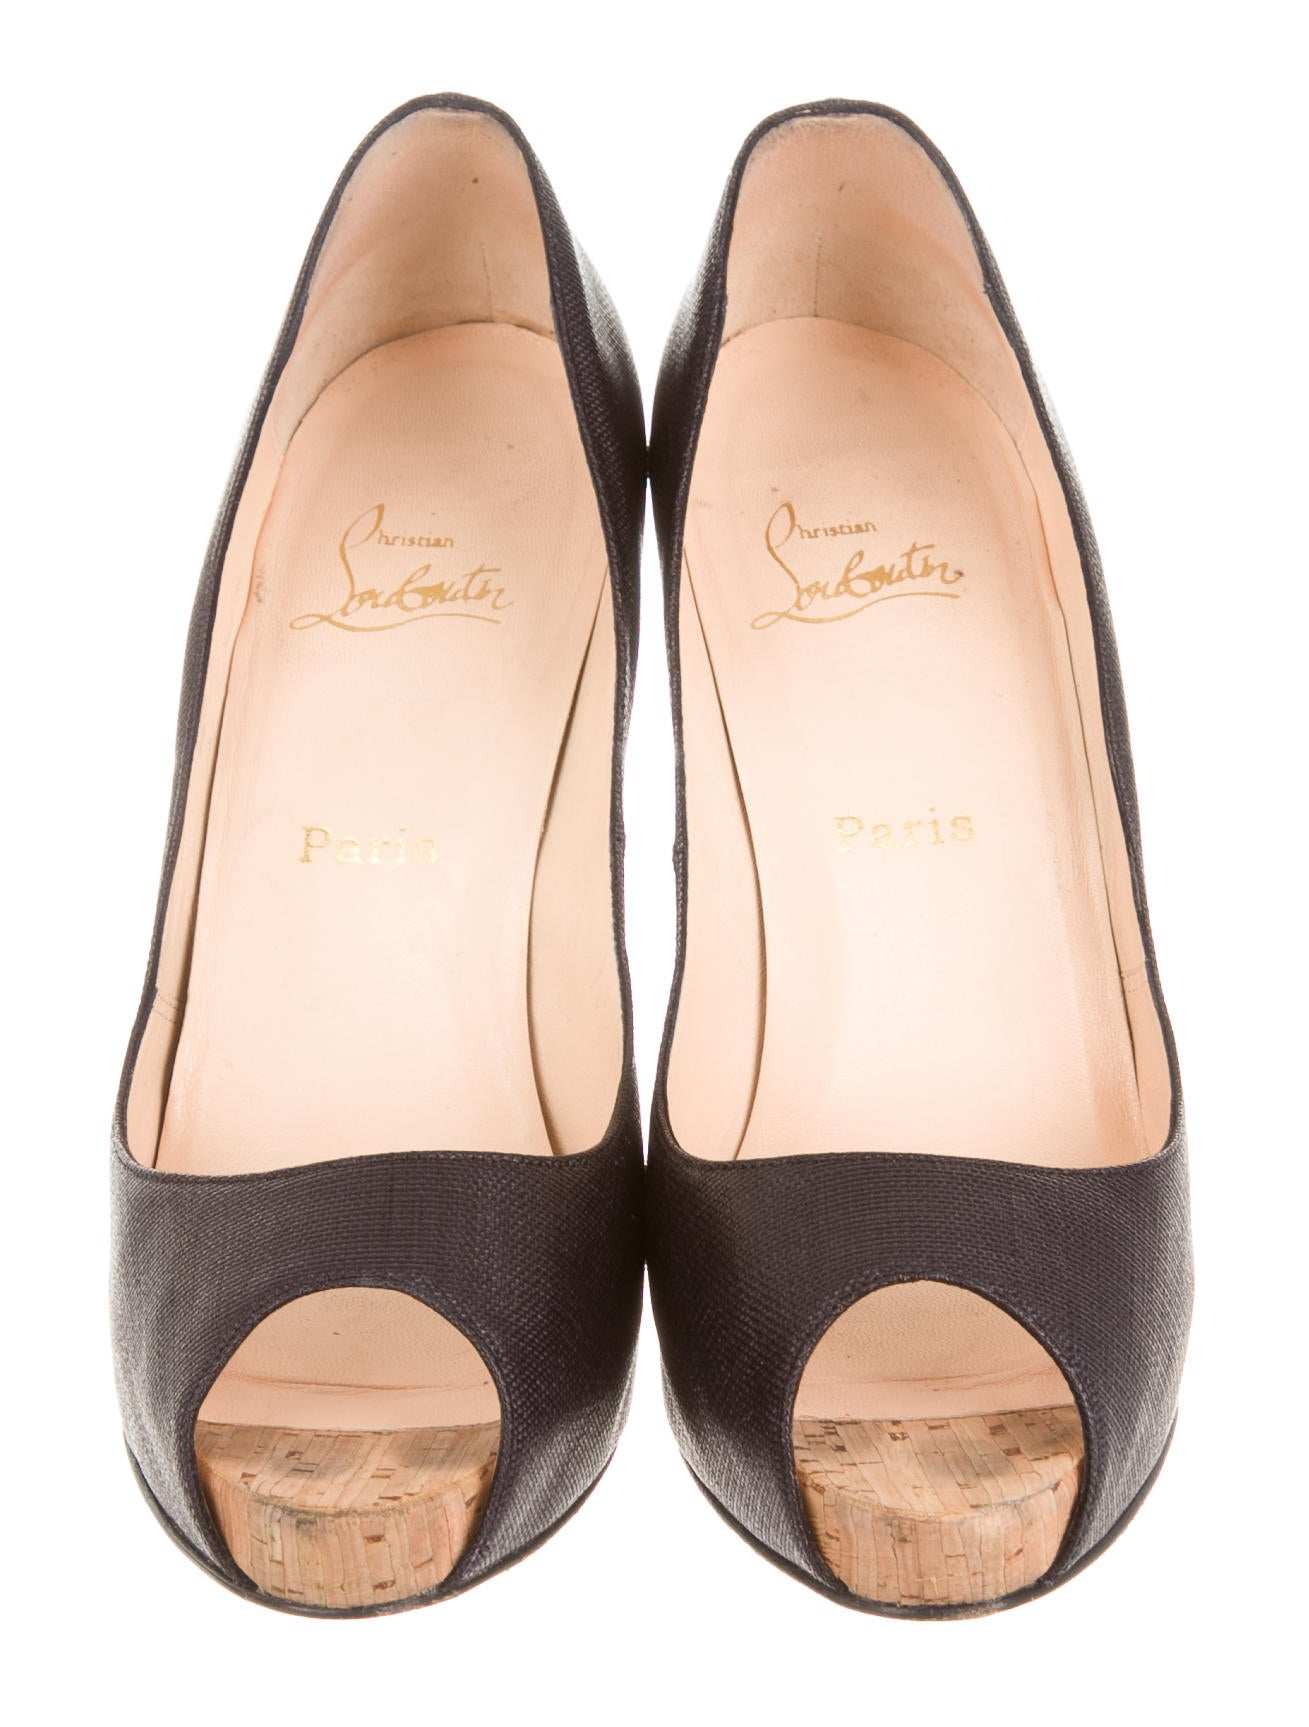 christian louboutin metallic cork flo pumps